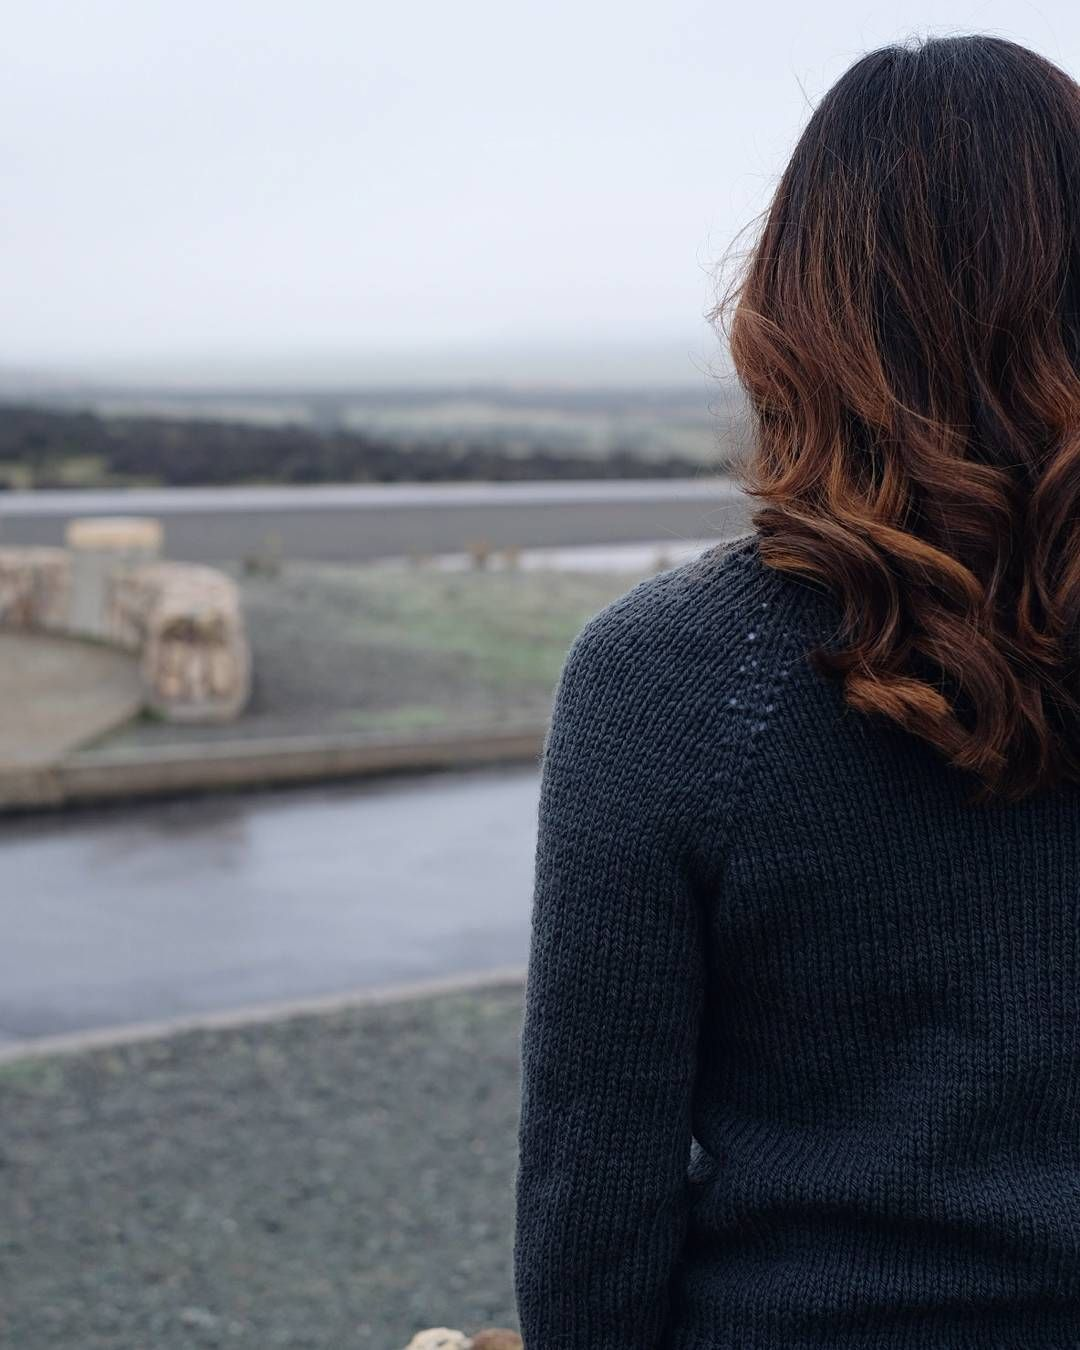 My beautiful friend @blumenjj at a viewpoint earlier today wearing her finished @knitbot Lesley in Father which is just fantastic and I need one now. Thanks Jenny! by yarnonthehouse